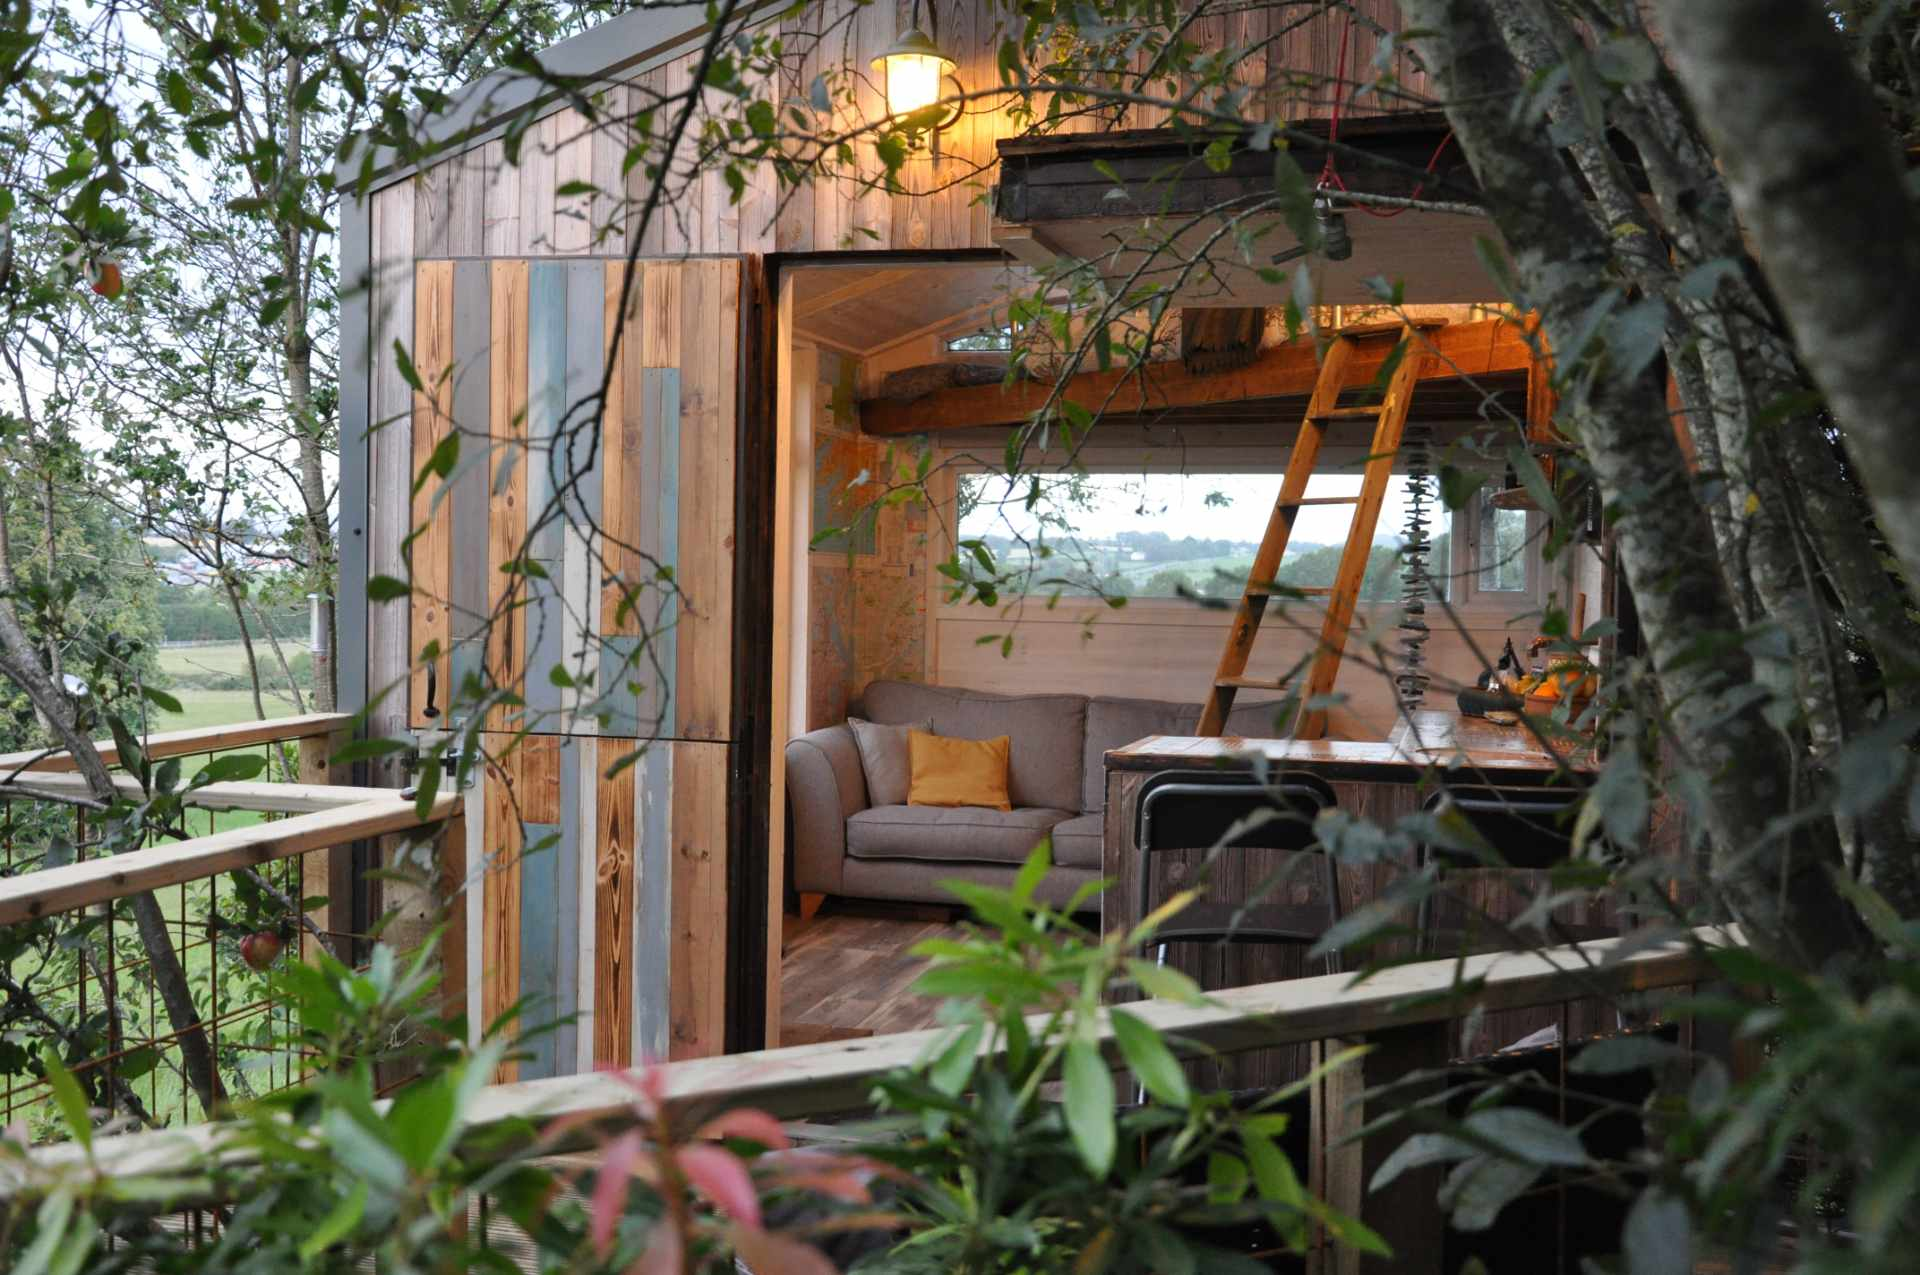 the-hideout-treehouse-living-area-seen-through-trees-in-wexford-treehouses-ireland